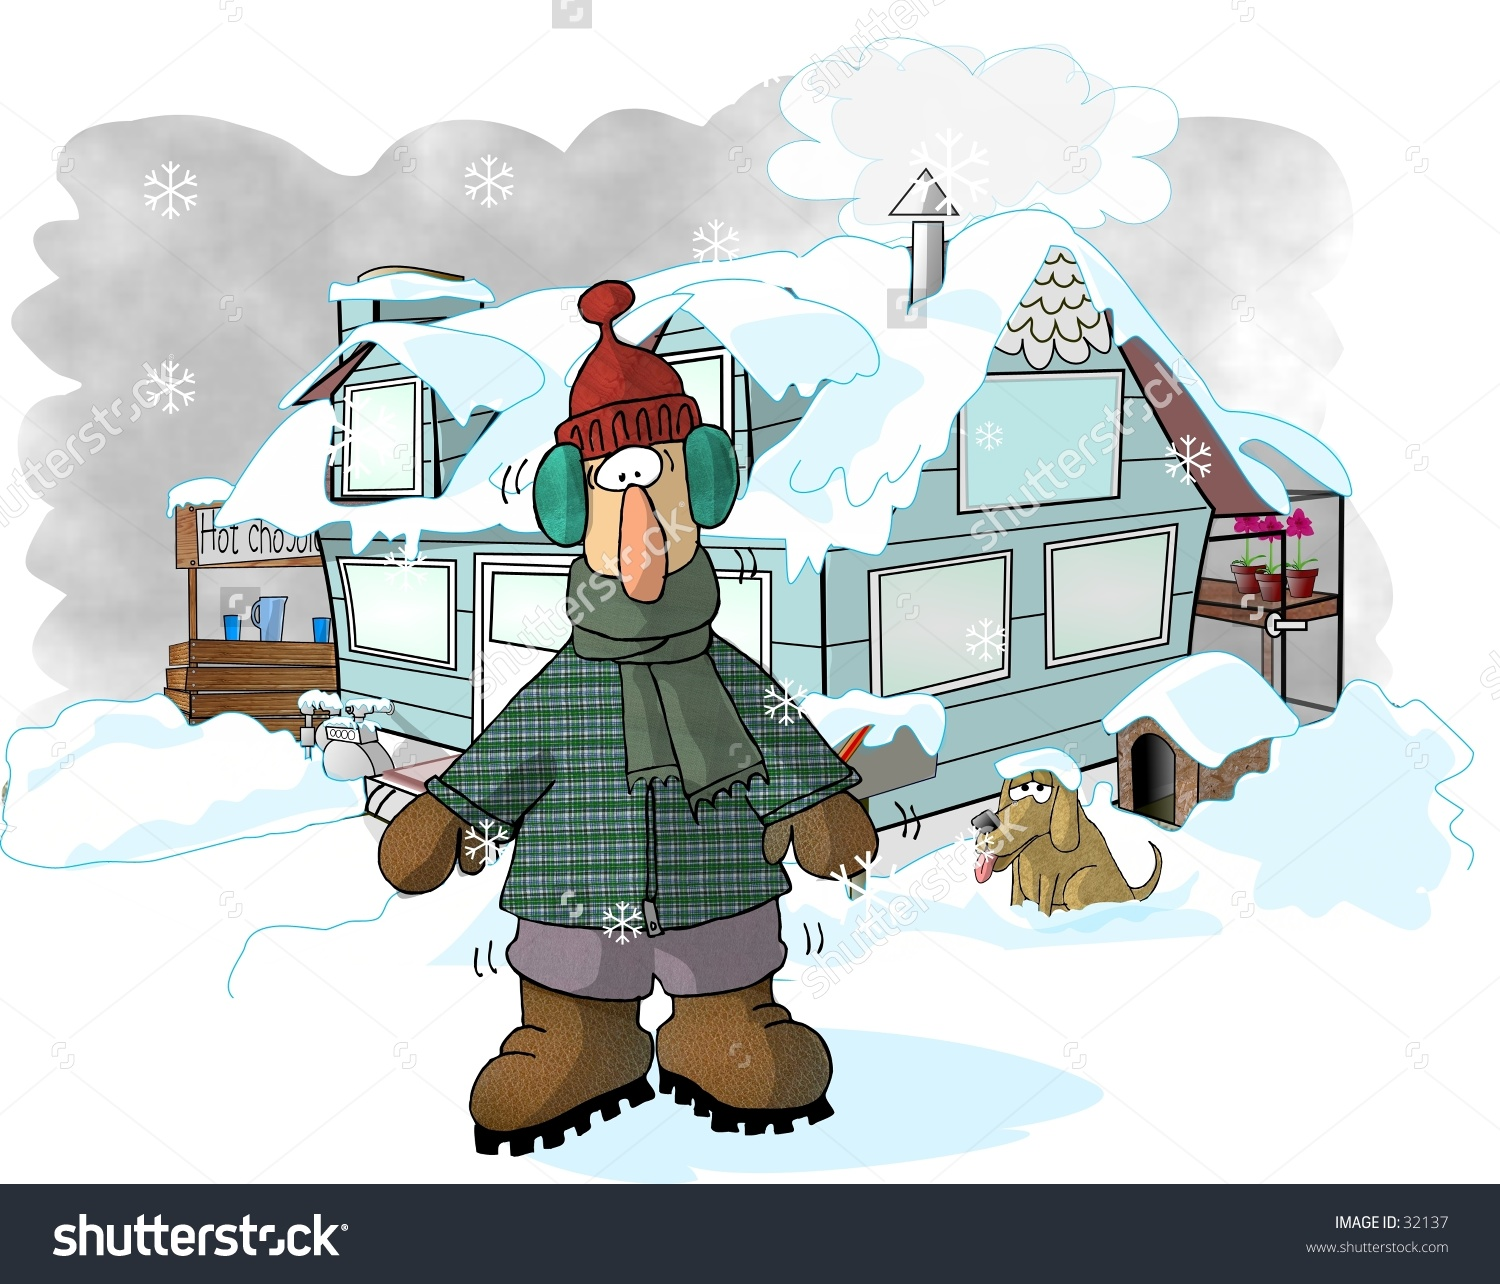 Clipart of cold house.